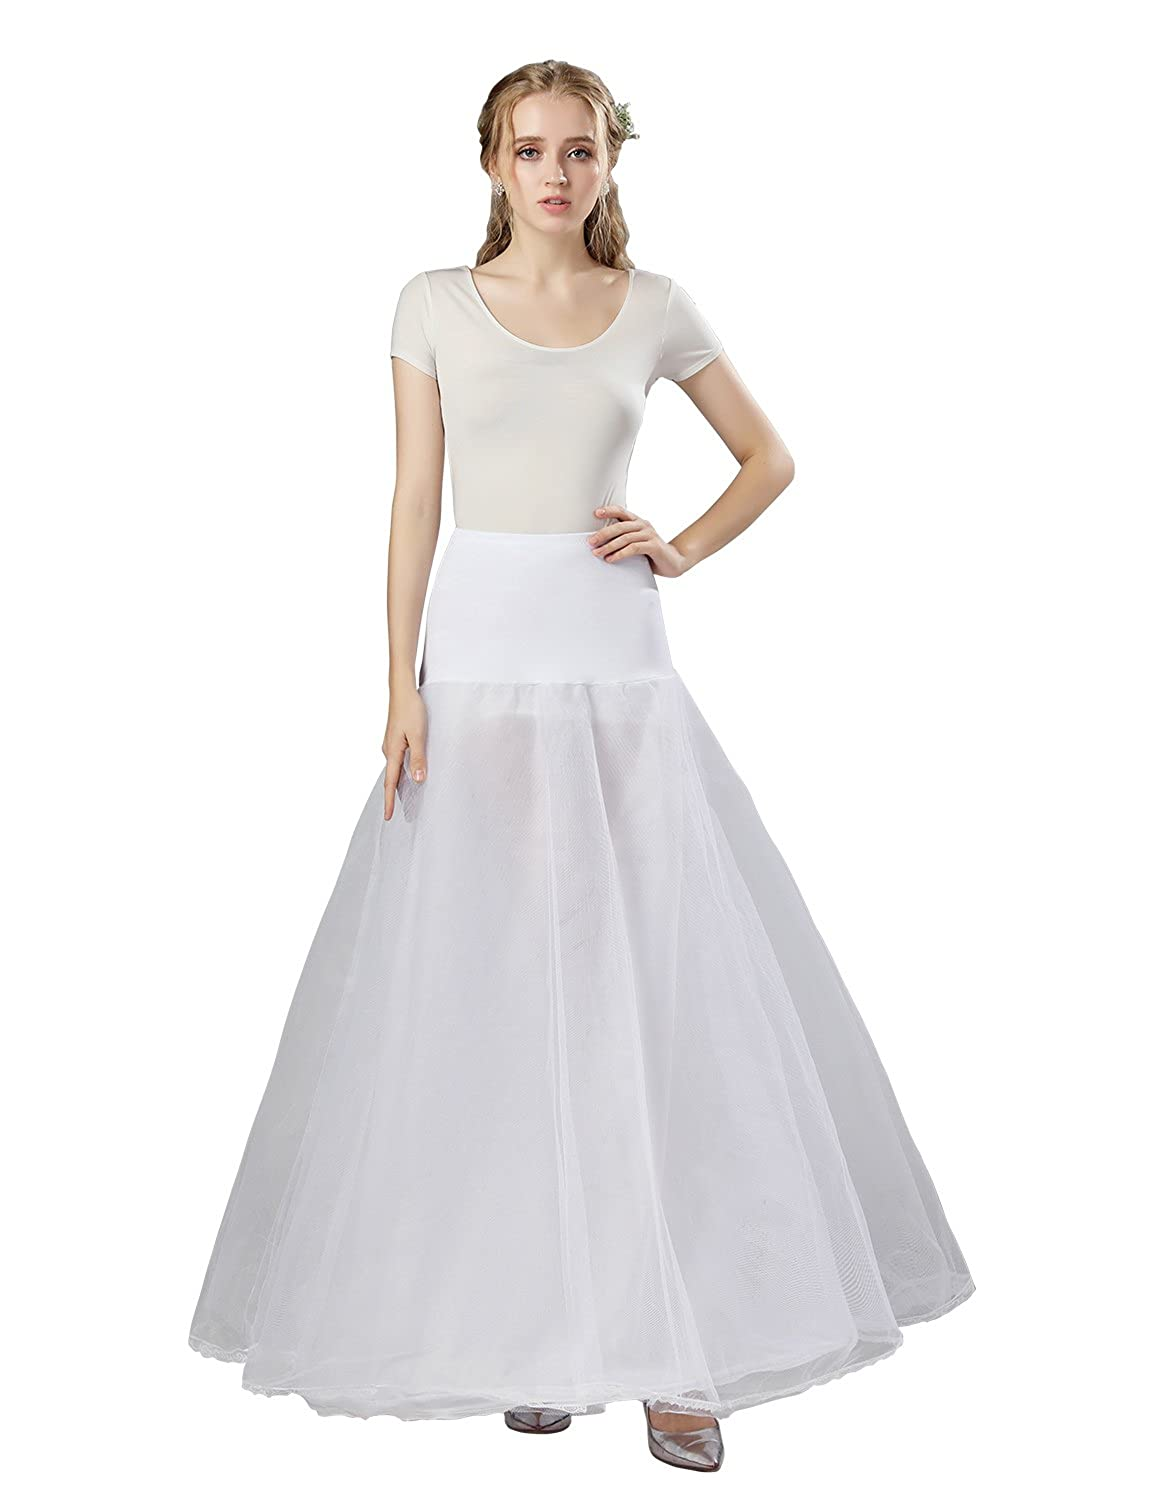 Prom dresses to hire